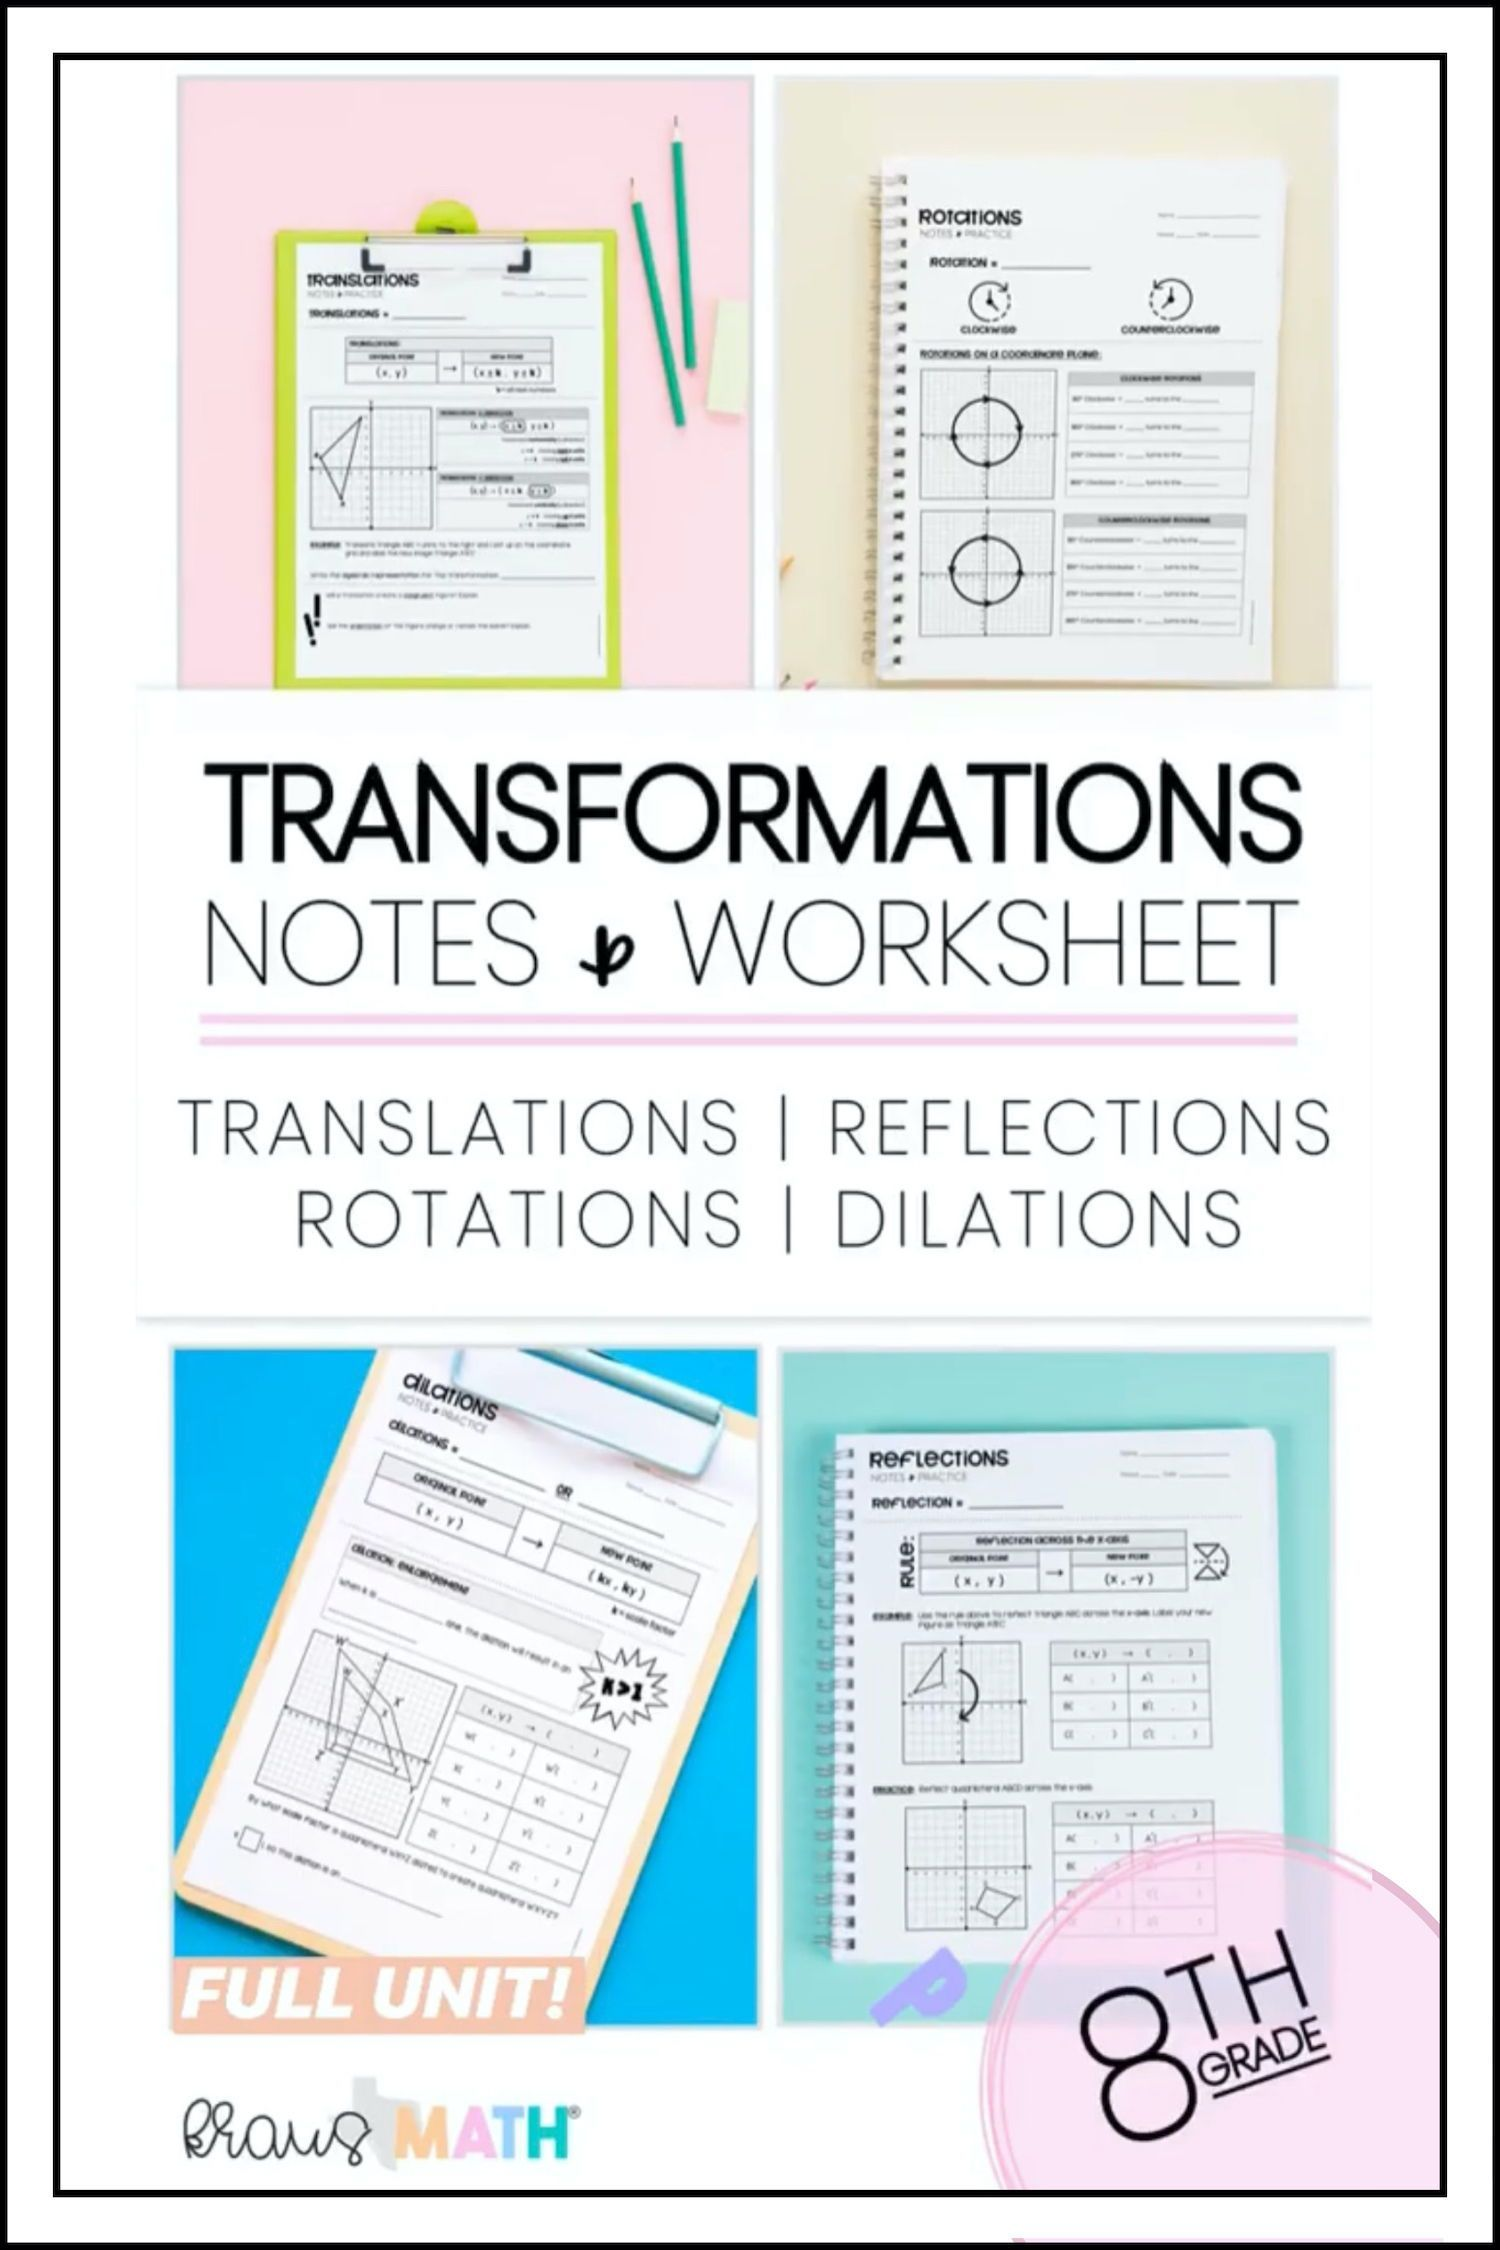 Transformations Notes Practice Worksheets Kraus Math Math Facts Teaching Geometry Practices Worksheets